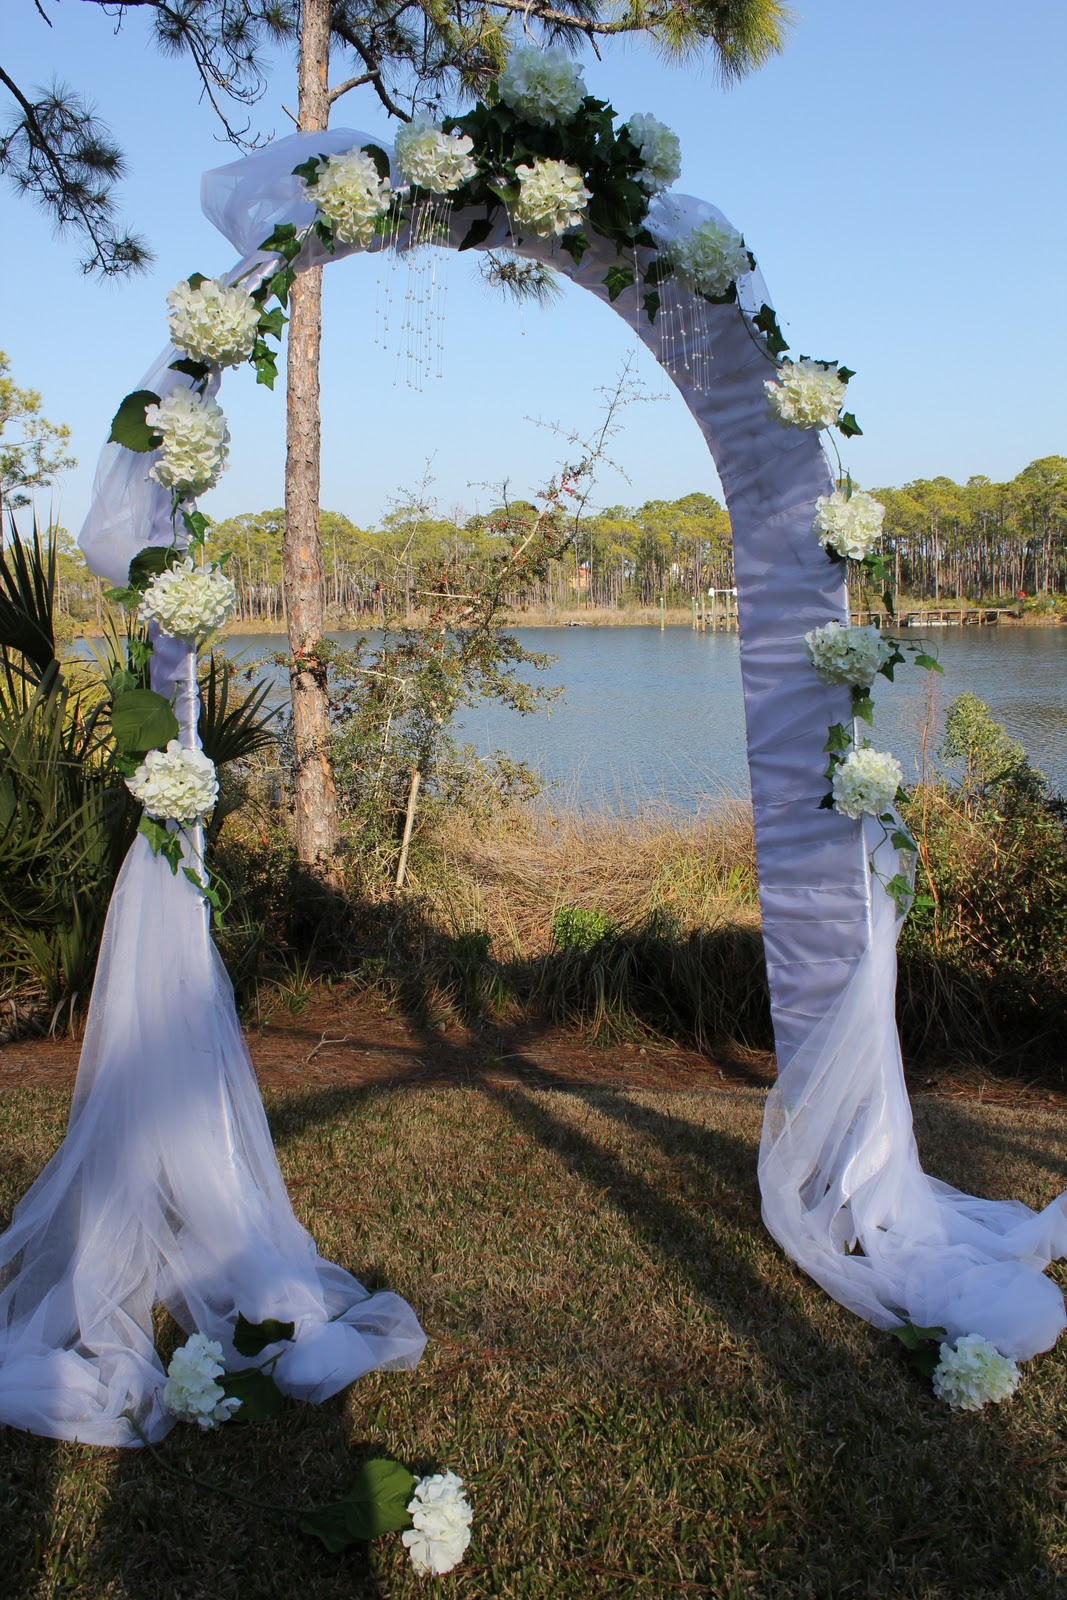 decorated wedding arch unique floral arrangement ideas for events amp homes 3347